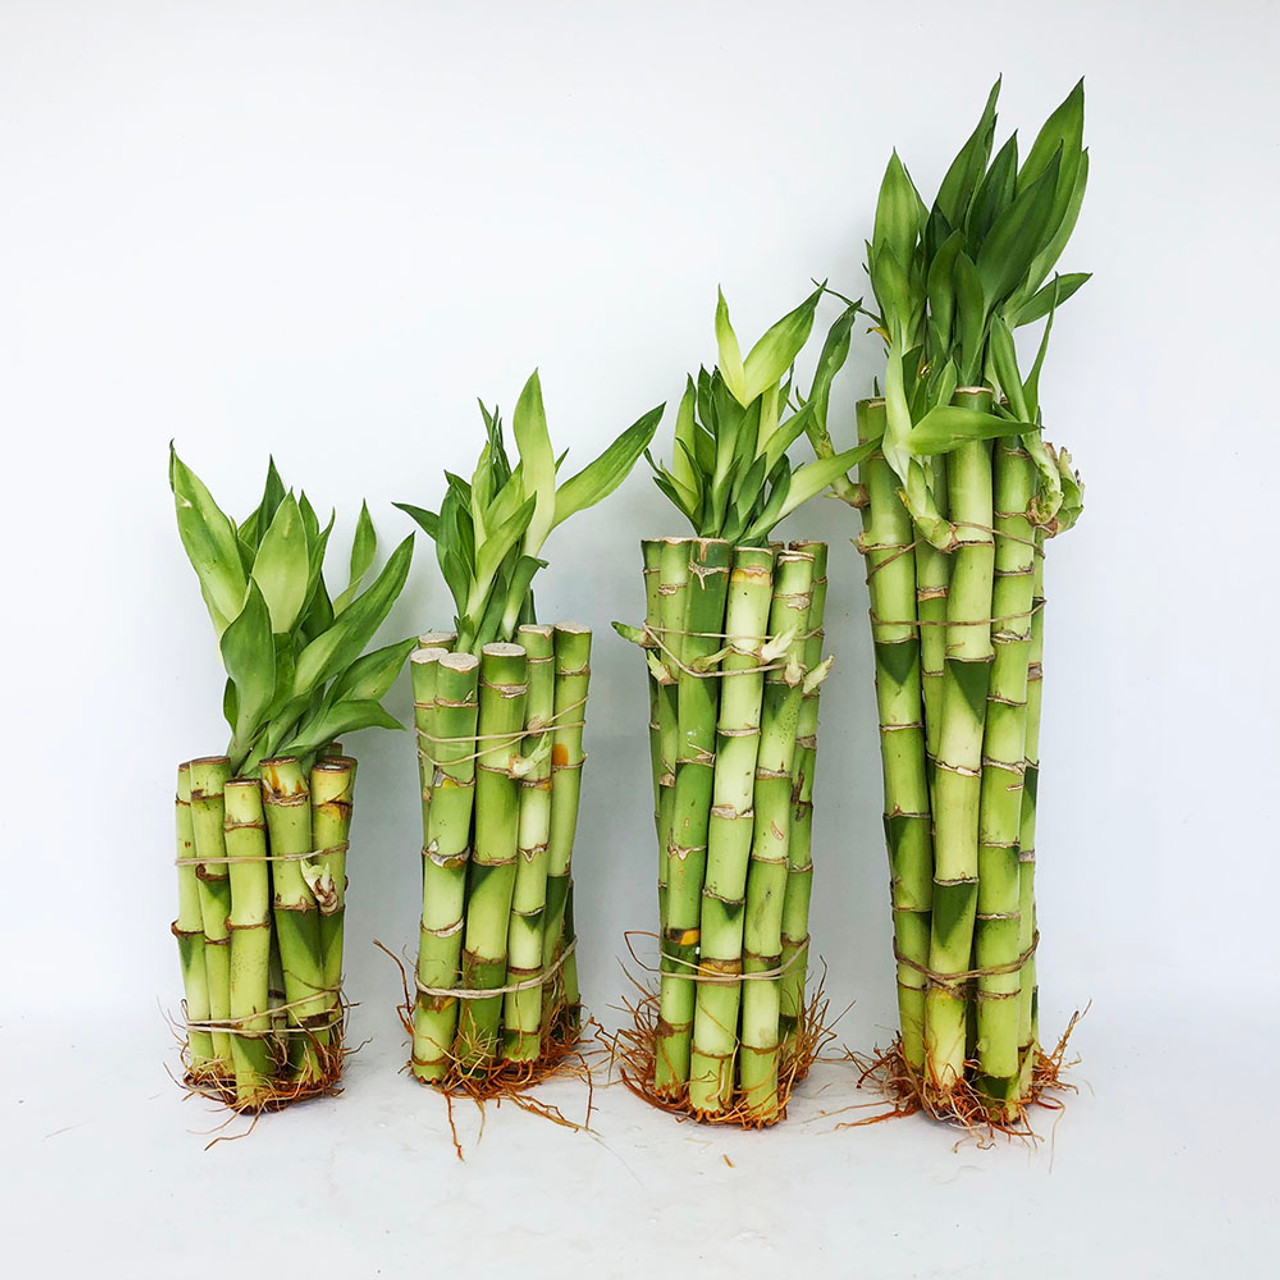 8 Quot Straight Lucky Bamboo Stalks 10 Stalks Bonsai Outlet